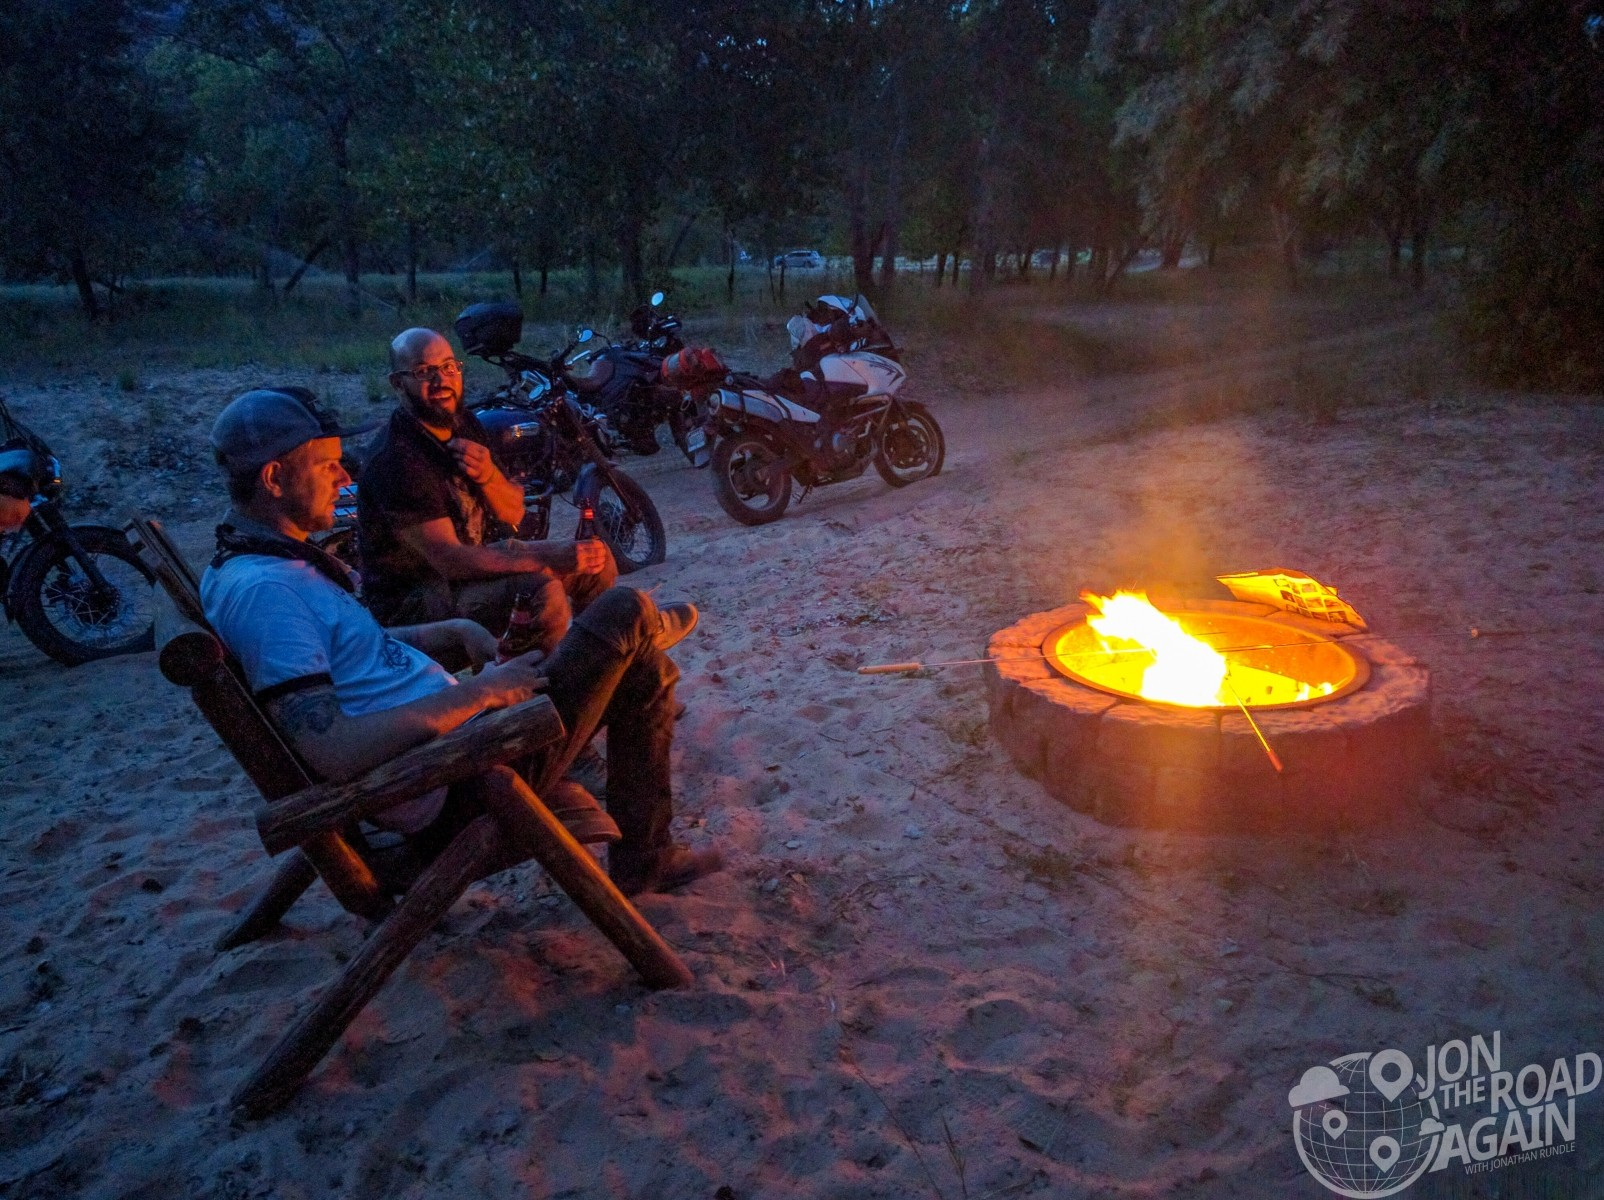 Fire pit and motocamping